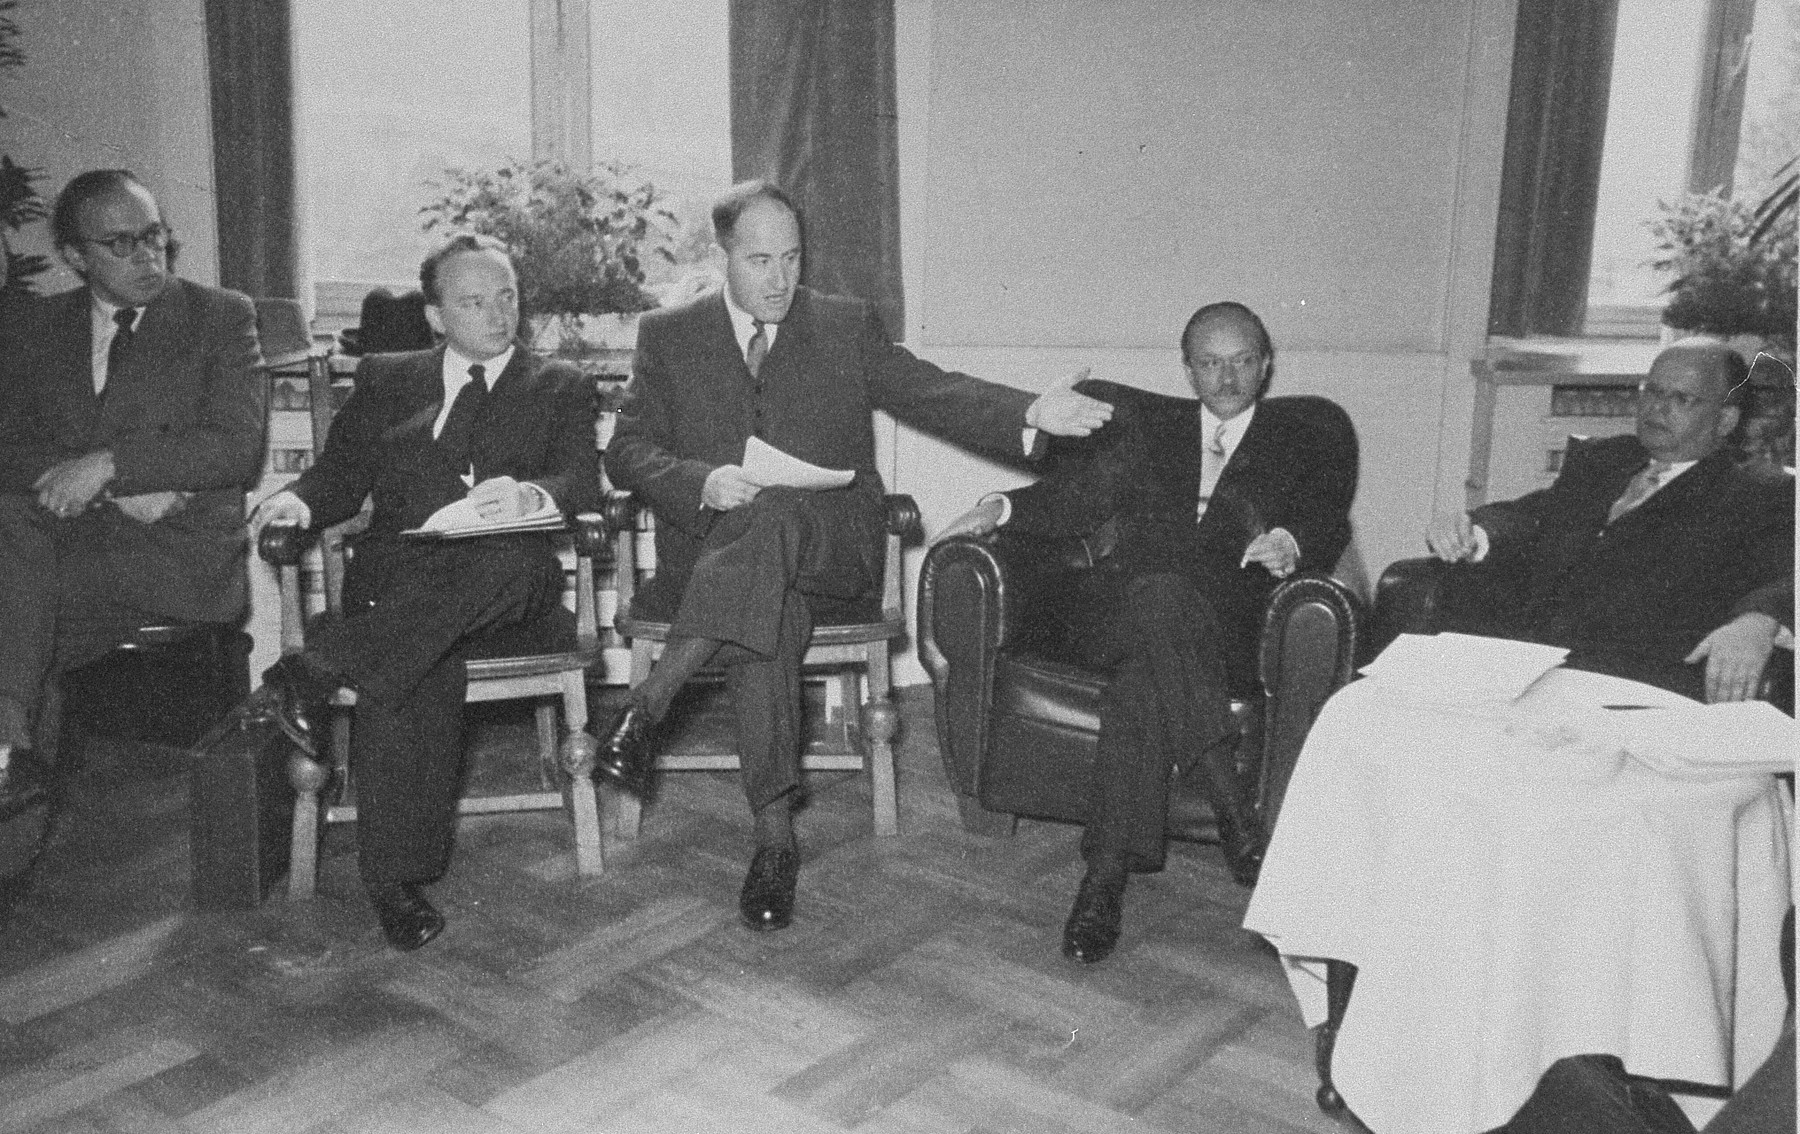 Members of the Conference on Jewish Material Claims meet in Luxembourg for the signing of the Reparations Agreement between the German Federal Republic, the State of Israel, and the Conference on Jewish Material Claims.    Among those pictured is Benjamin Ferencz (second from the left).